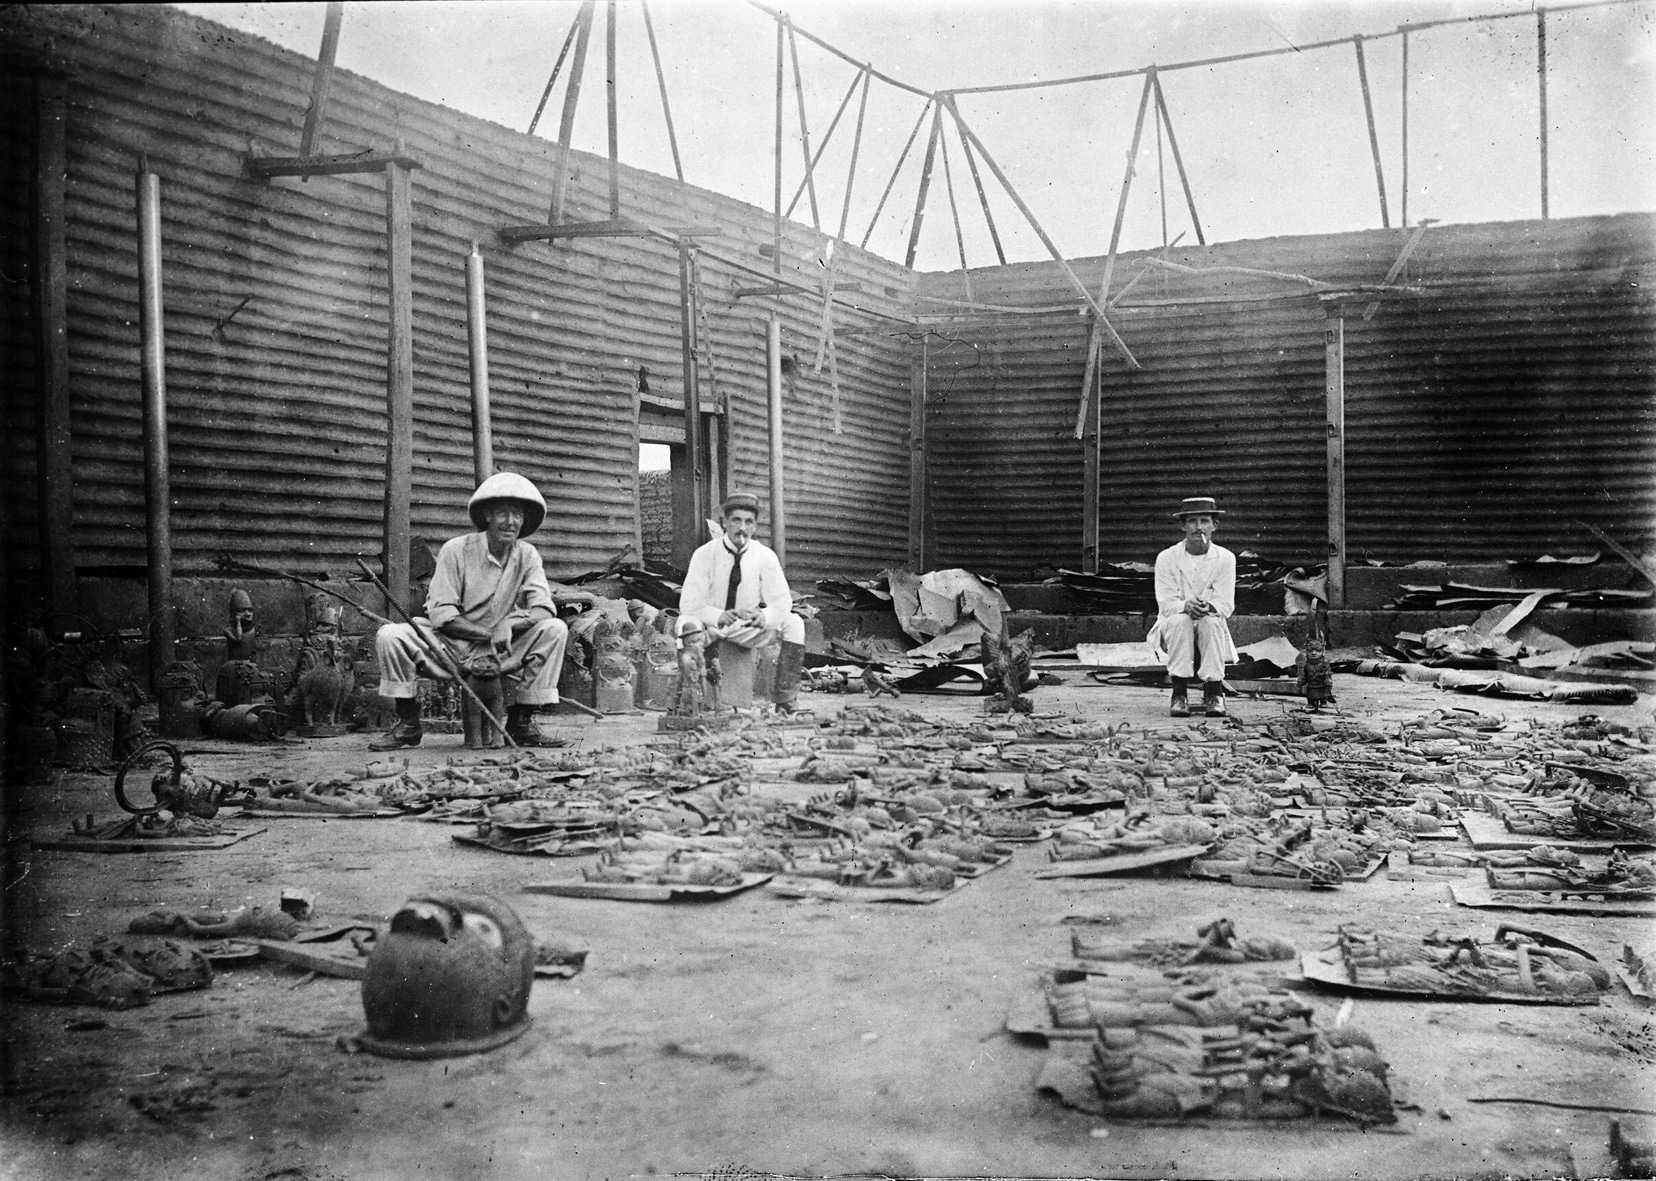 British soldiers in Benin during the 1897 Expedition